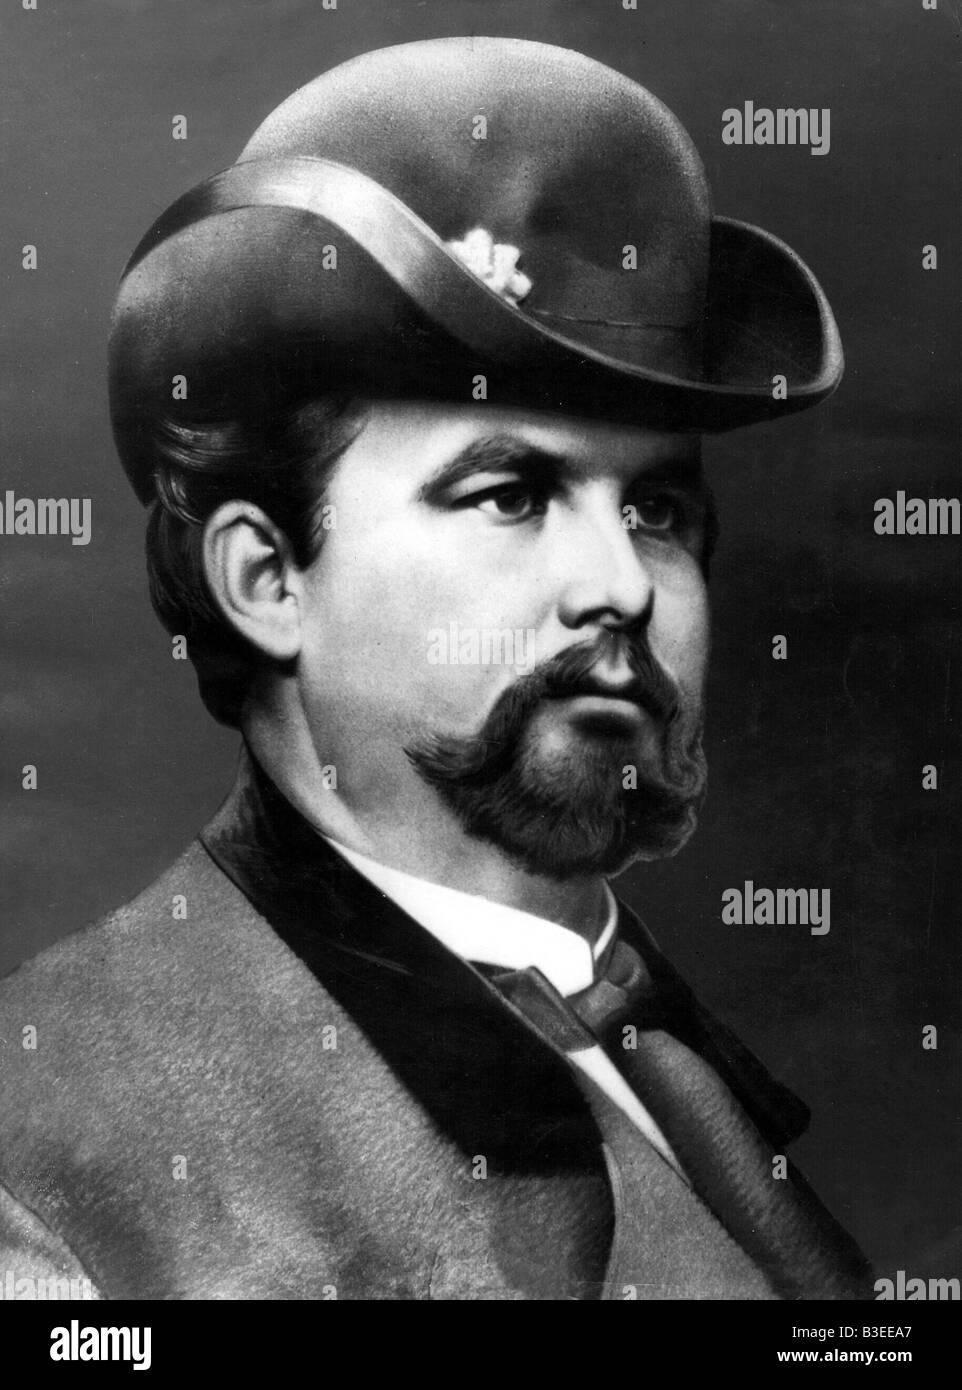 Ludwig II, 25.8.1845 - 13.6.1886, King of Bavaria 10.3.1864 - 13.6.1886, portrait, , Additional-Rights-Clearances - Stock Image